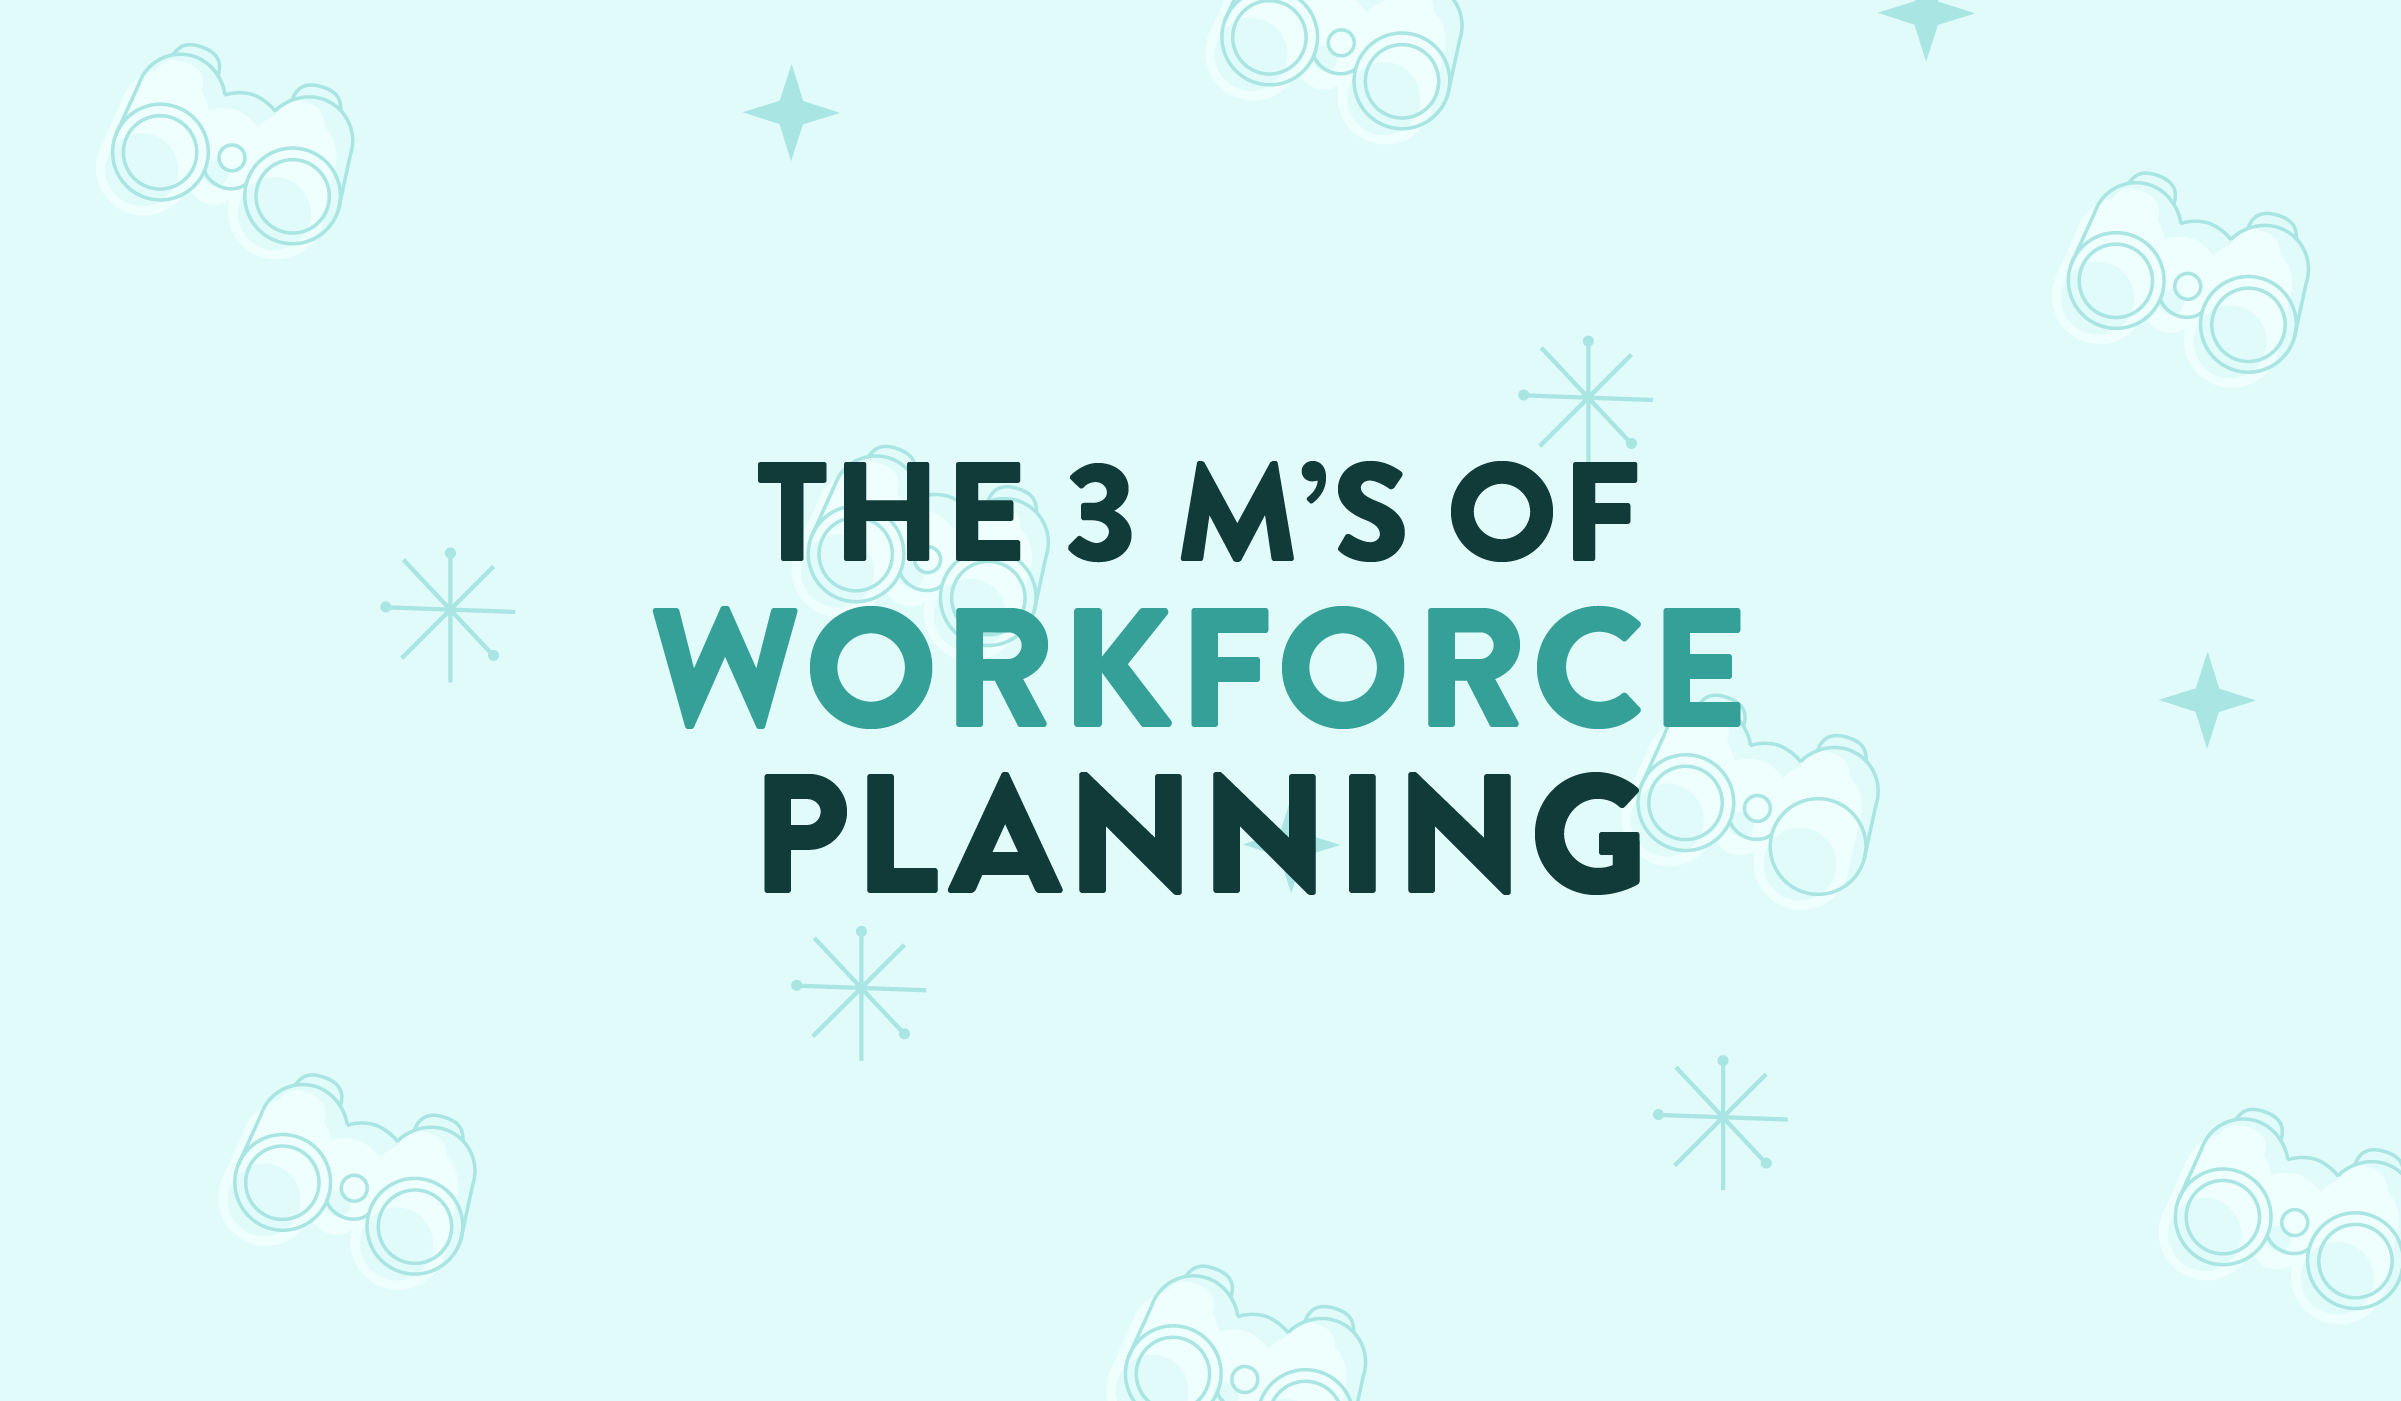 The 3 M's of Workforce Planning